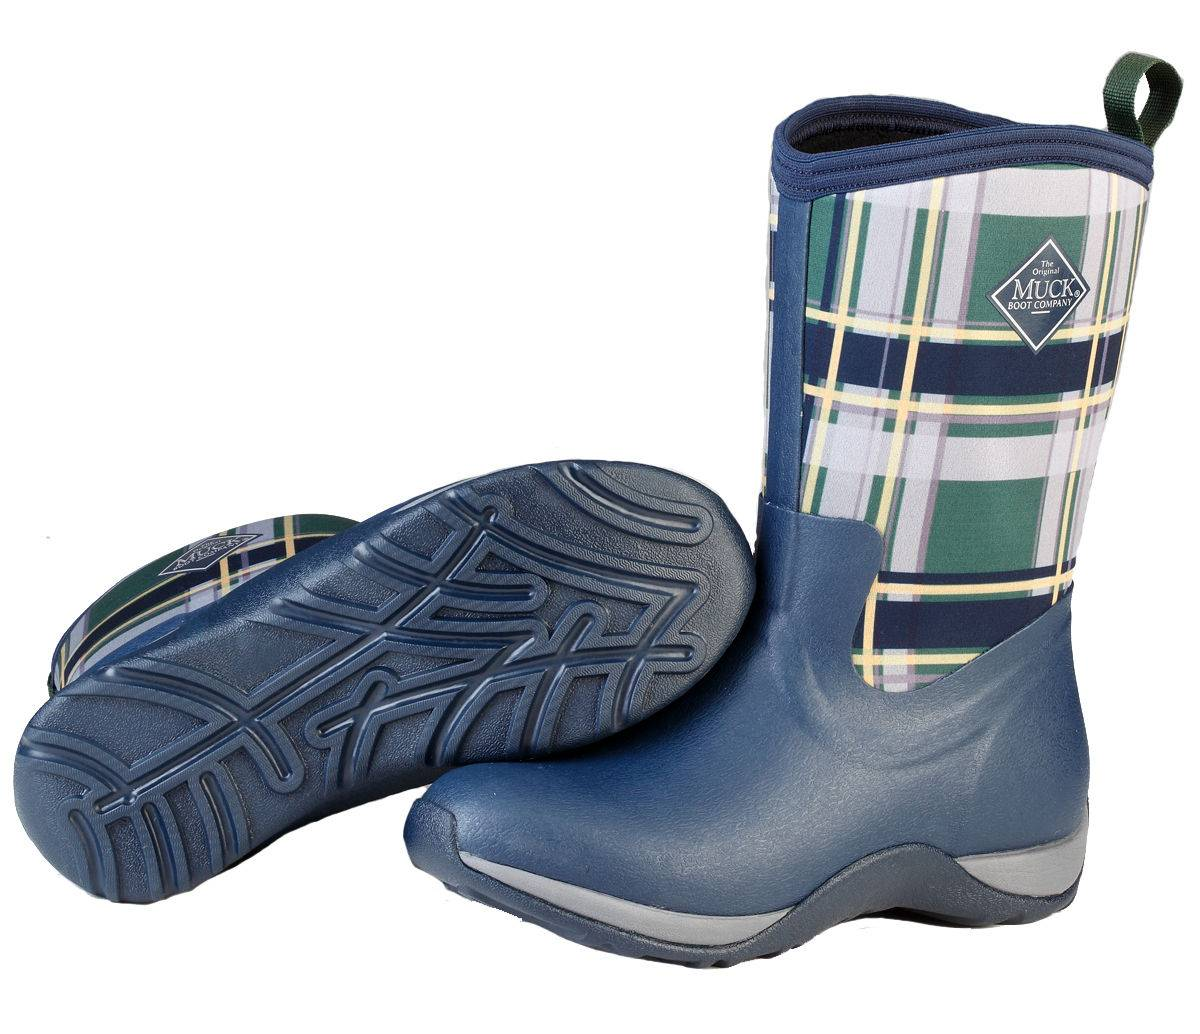 Muck Boots Arctic Weekend - Ladies - Navy/Green Plaid